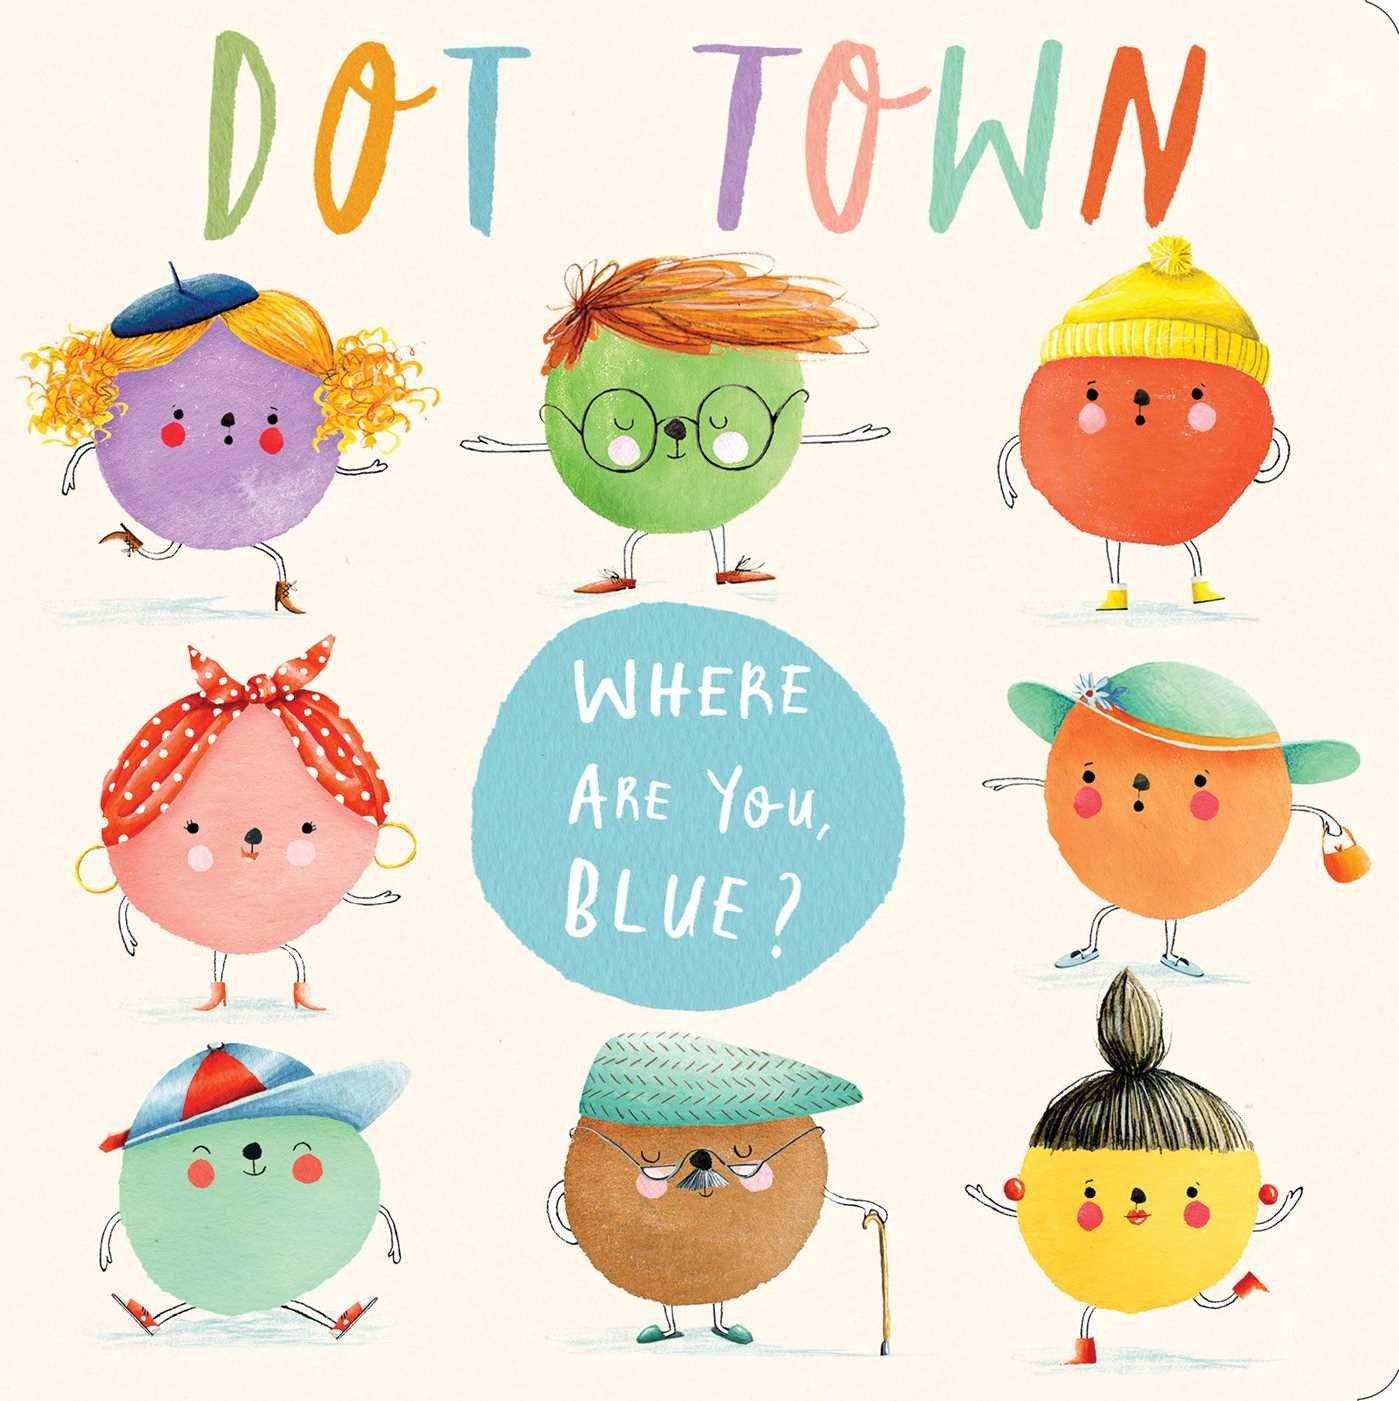 Amazon.com: Where Are You, Blue? (Dot Town) (9781481435895): Sonali ...